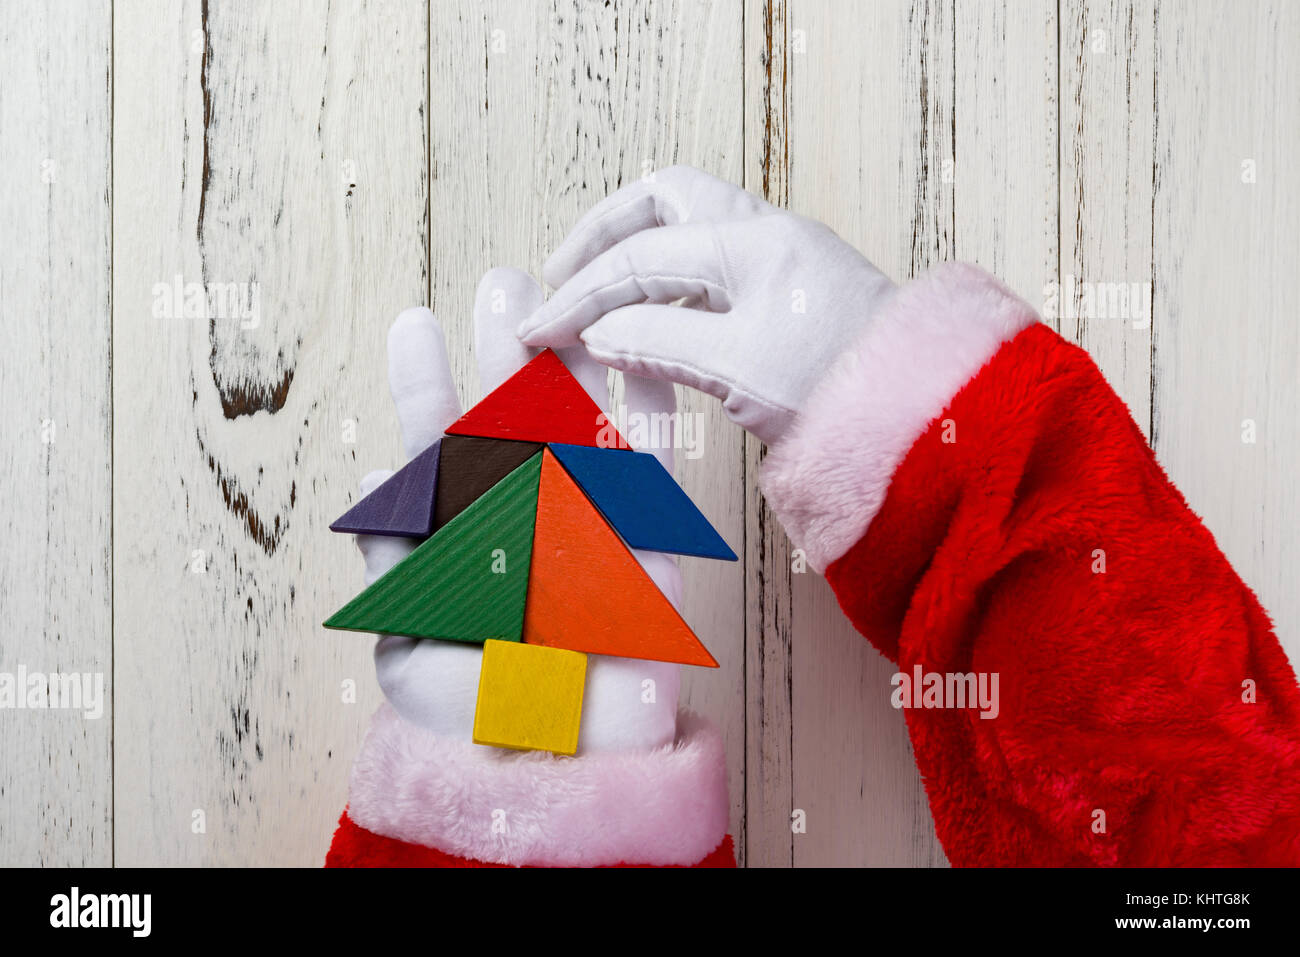 santa claus holding a christmas tree made by wooden tangram